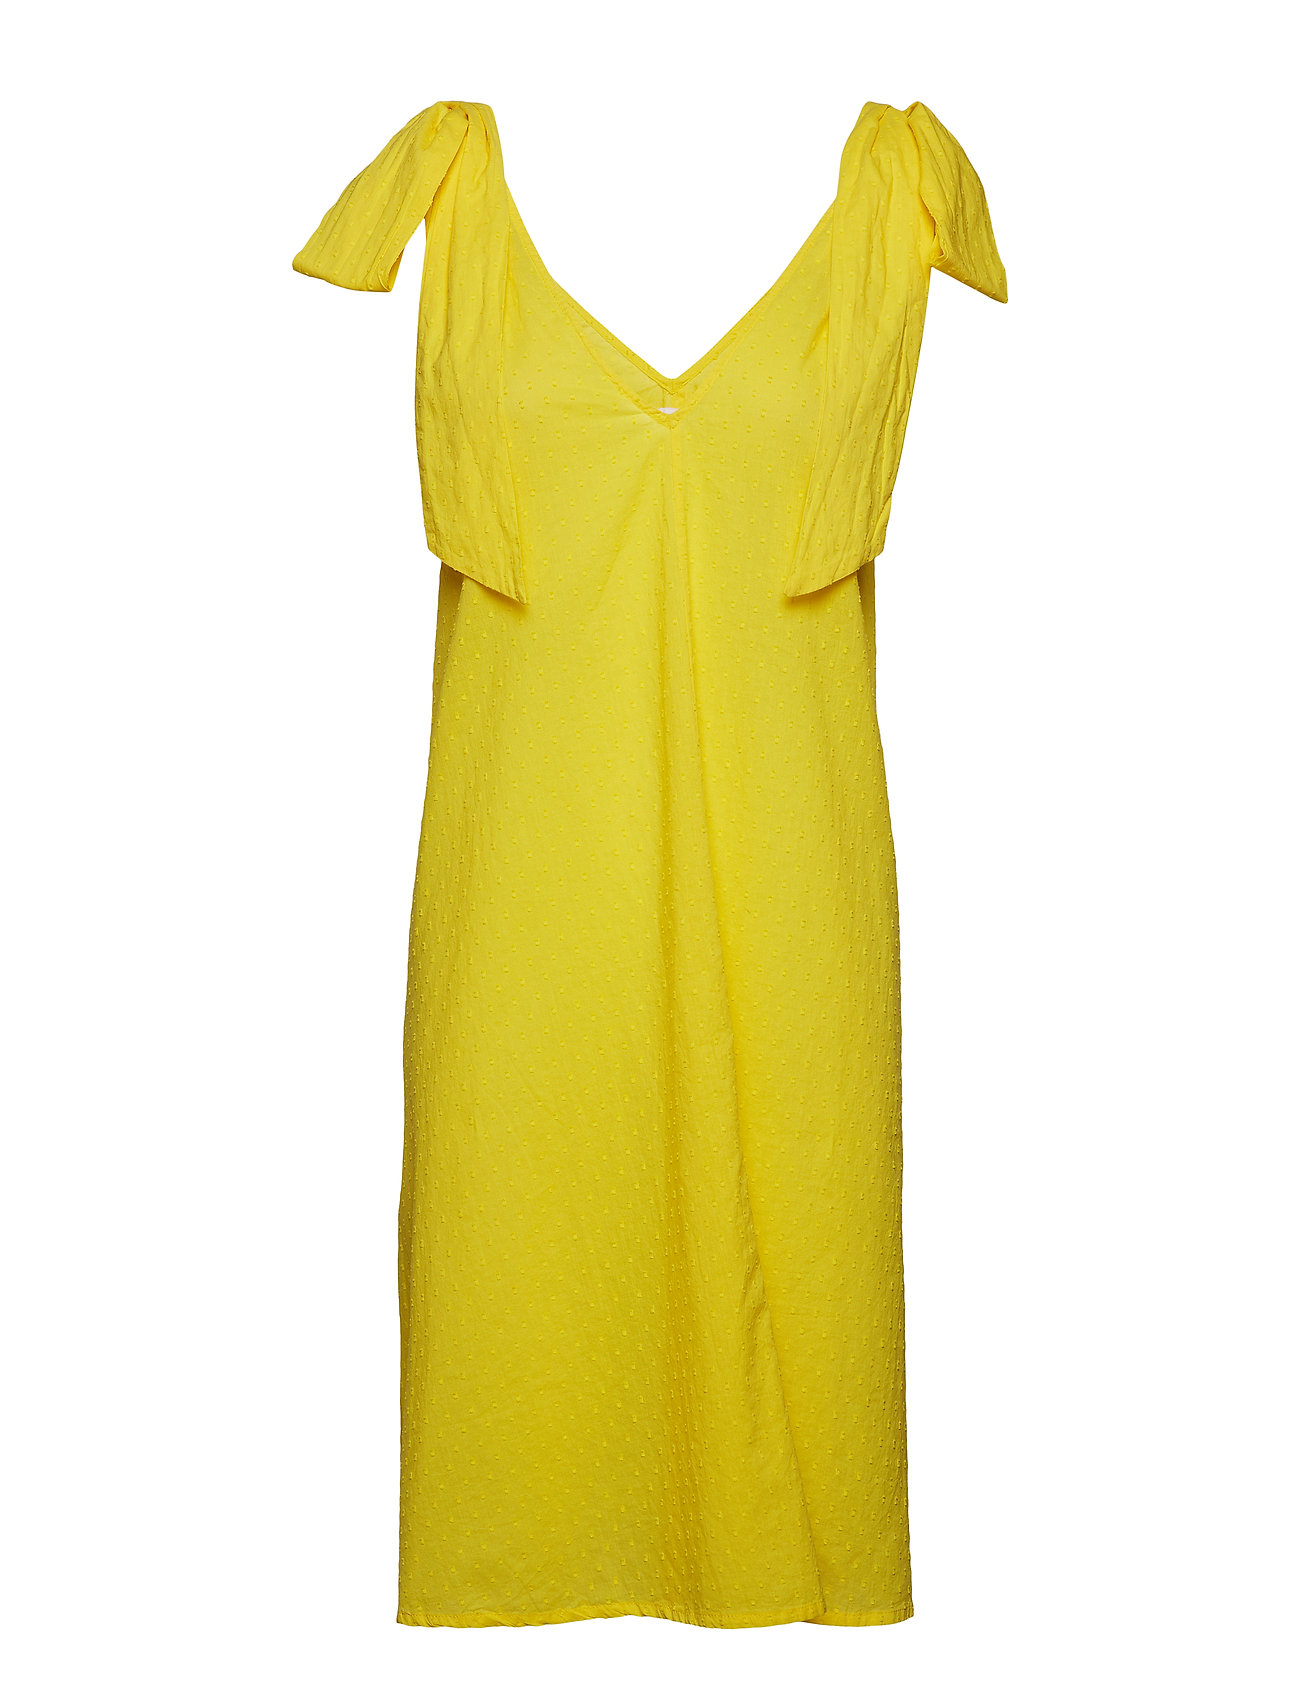 Lulu's Drawer Gabi dress - YELLOW